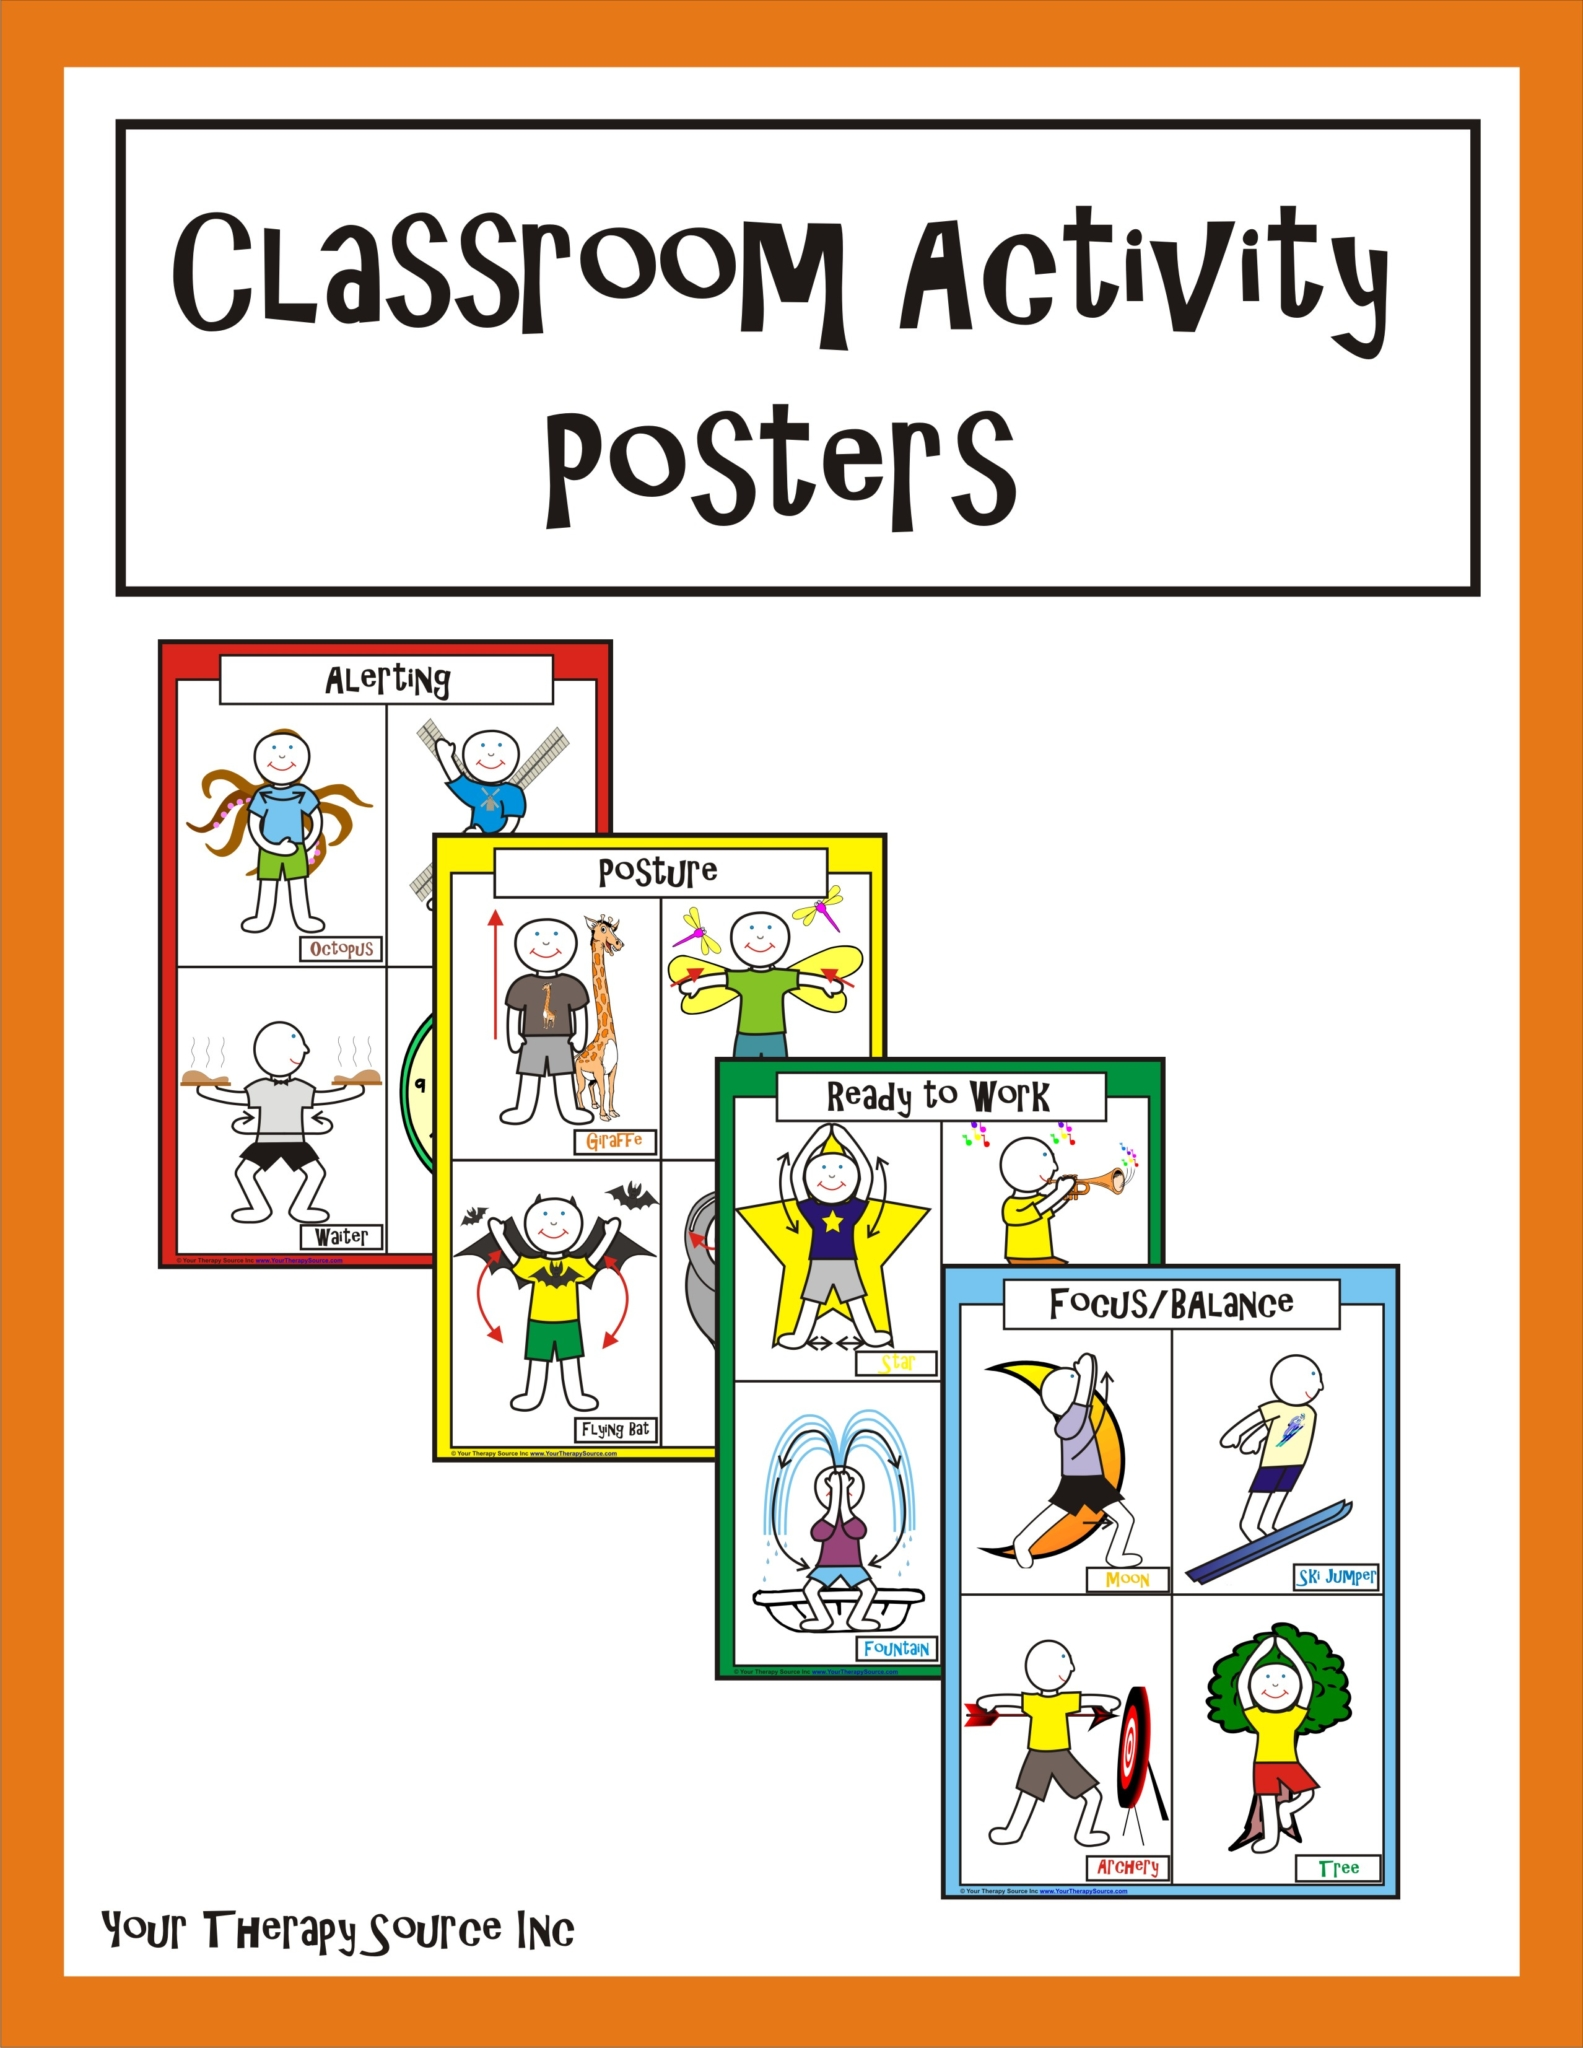 Classroom Activity Posters fromhttps://www.yourtherapysource.com/cap.html